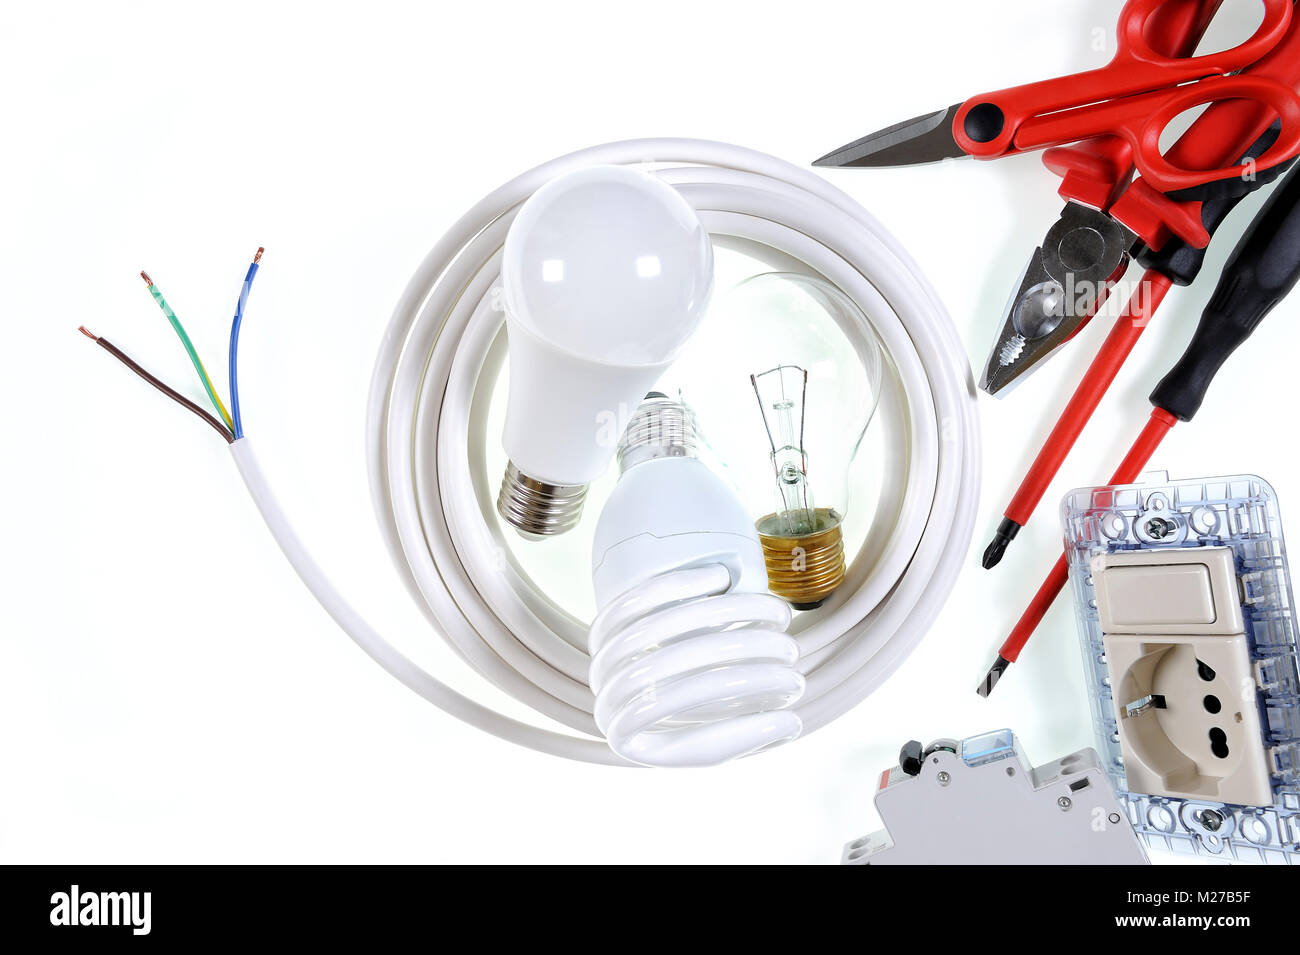 Close Up Of Work Tools And Components For A Residential Electrical Electric Wiring Installation Photographed On White Background